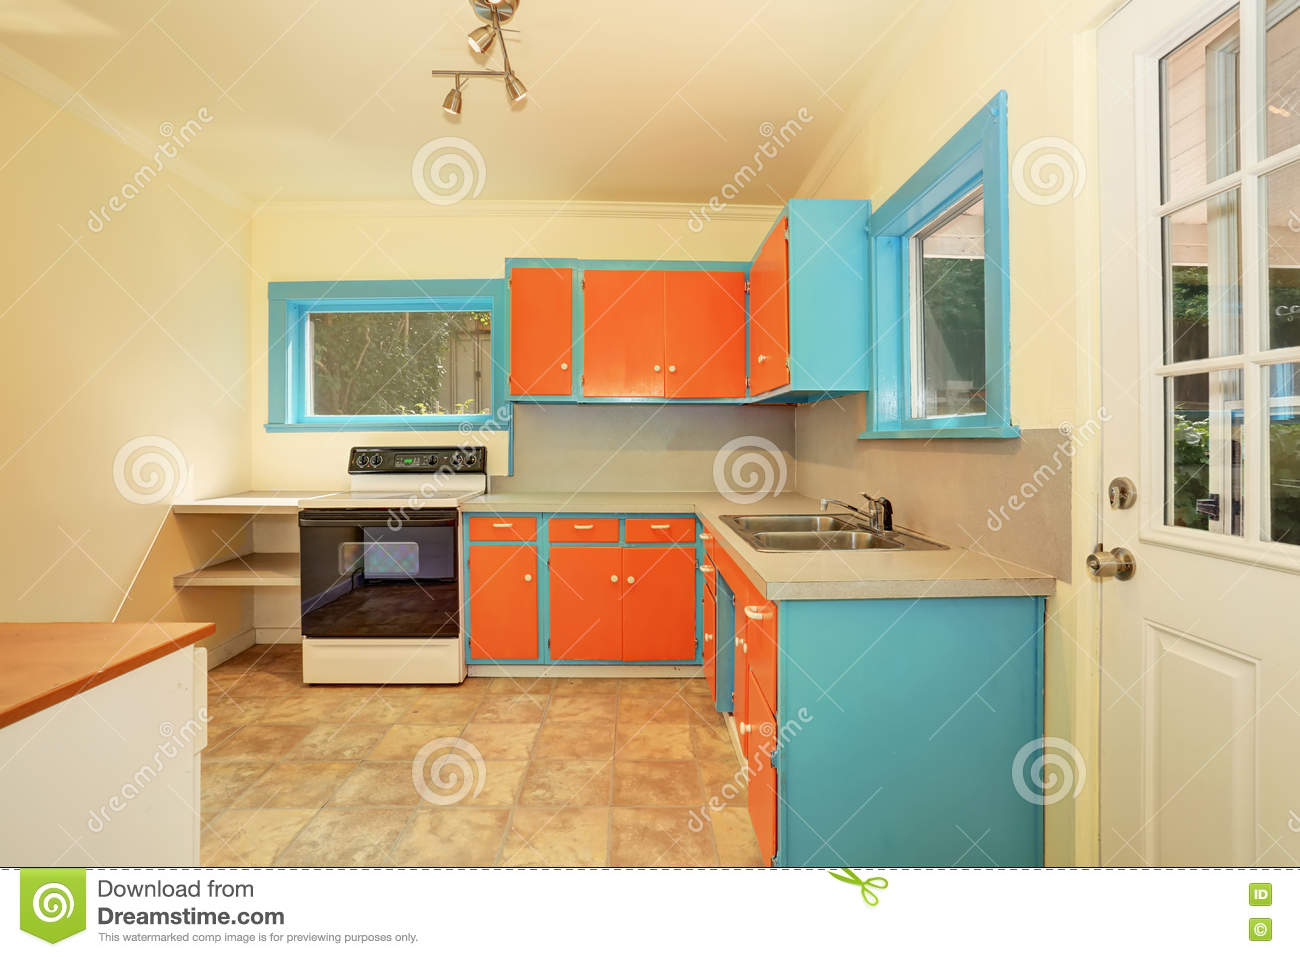 old fashioned kitchen interior with orange and blue cabinets